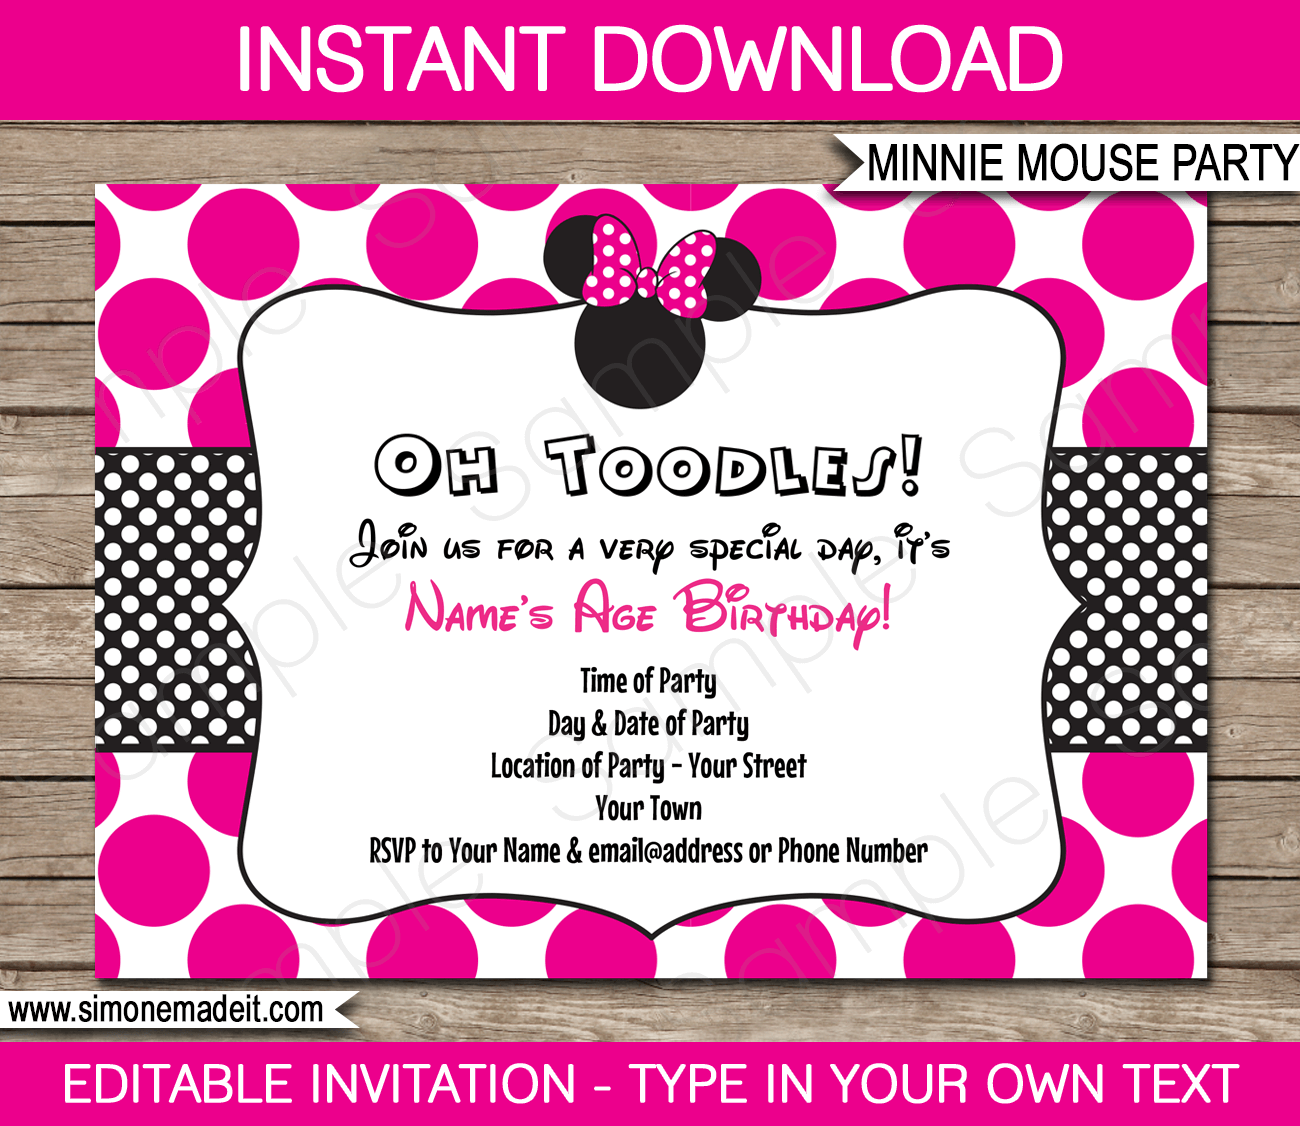 minnie mouse party invitations template pink